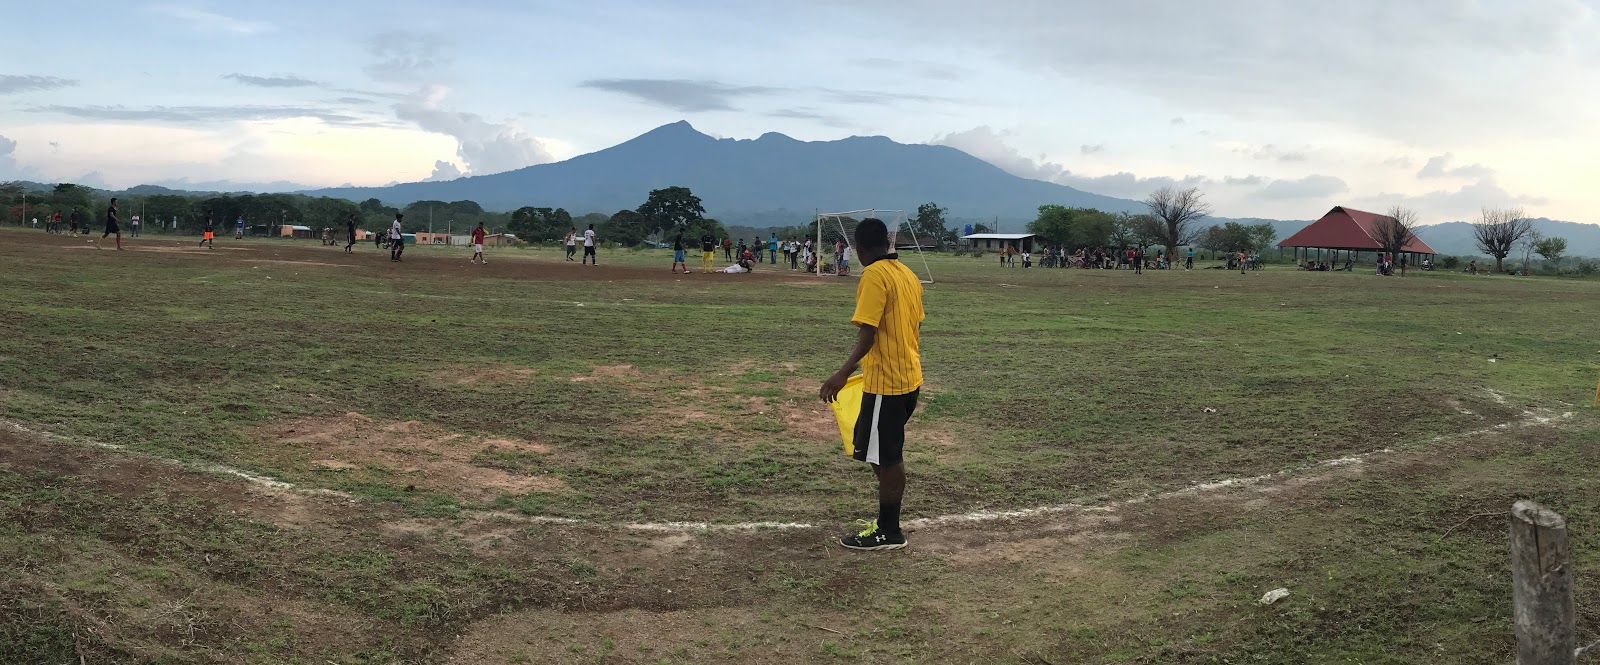 Bike climb of Mombacho Volcano - soccer field with volcano in background